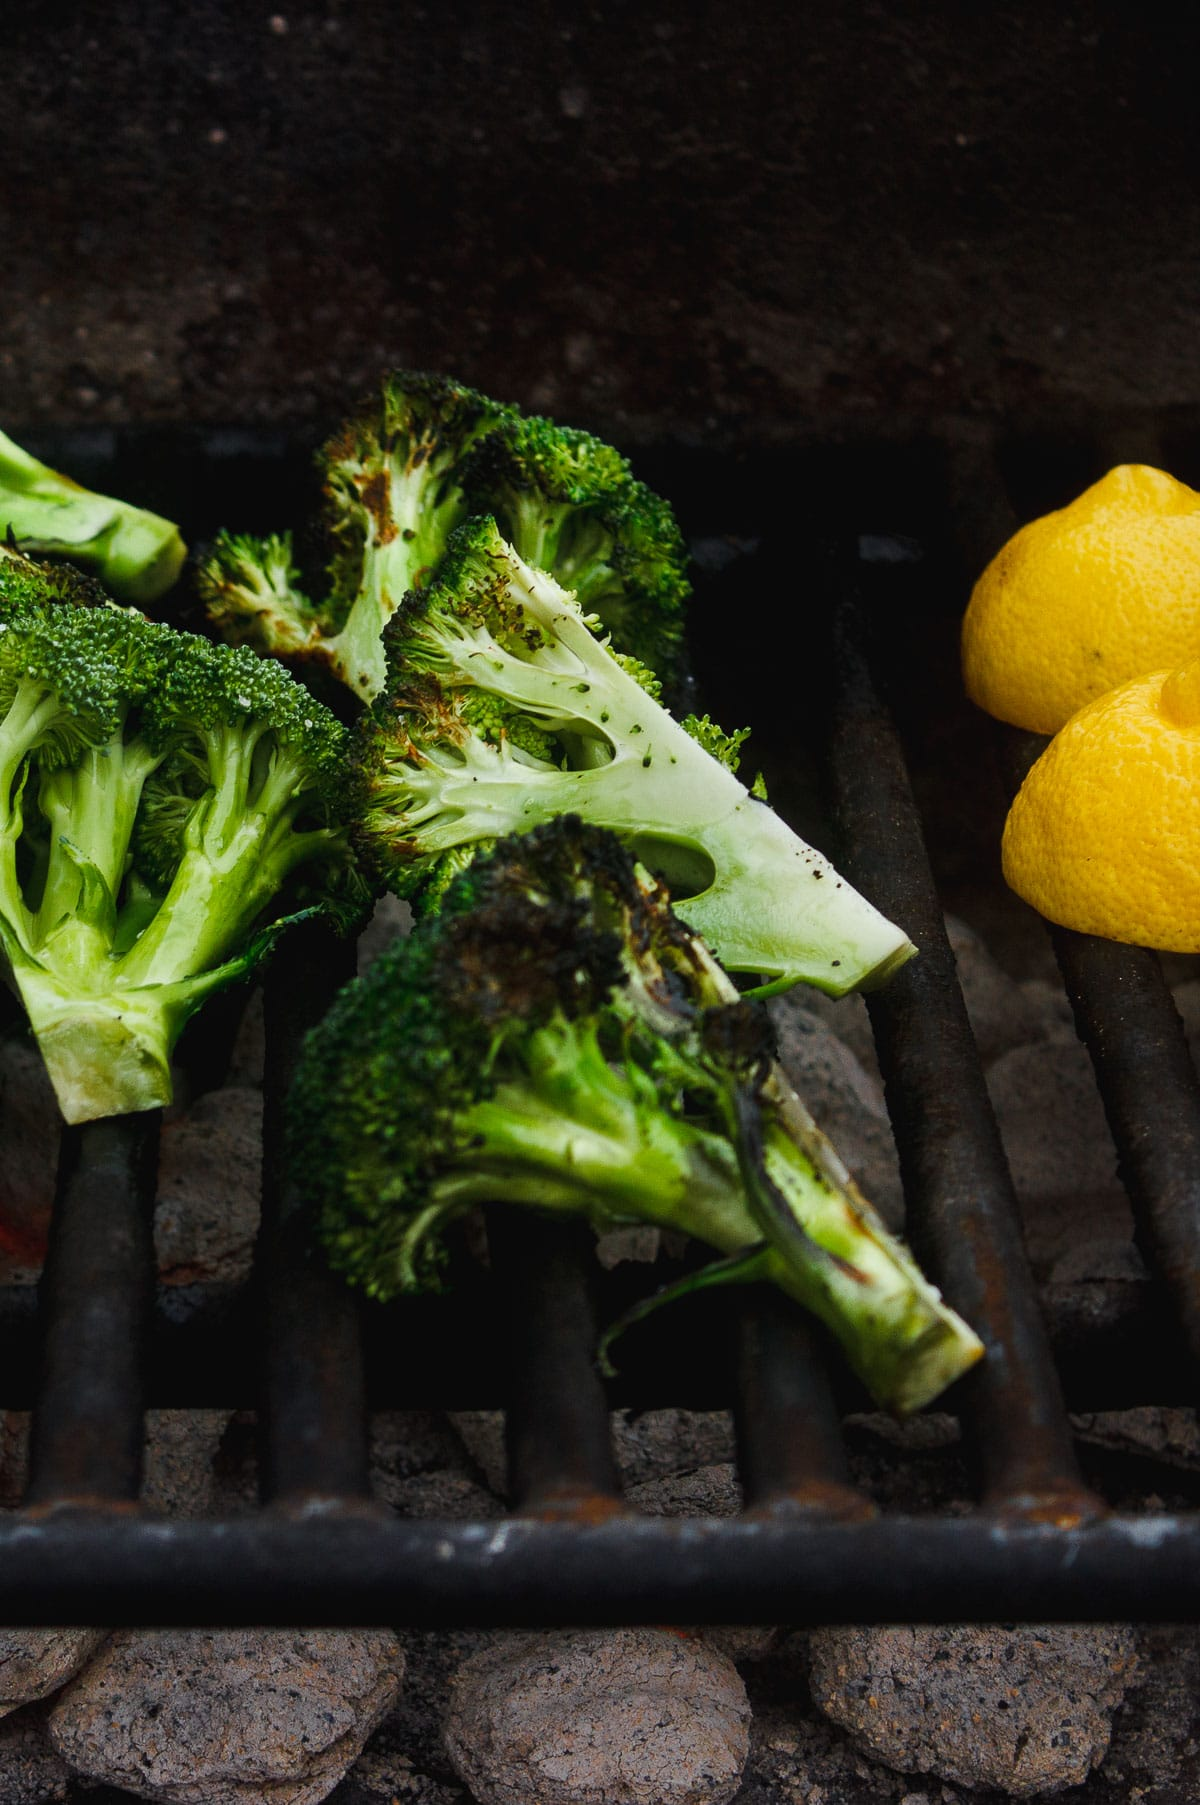 Grilled broccoli that is tossed in a zesty, charred lemon and parsley sauce. A vegan grilled side dish for anytime of year. #grilledbroccoli #grilledlemon #charredbroccoli